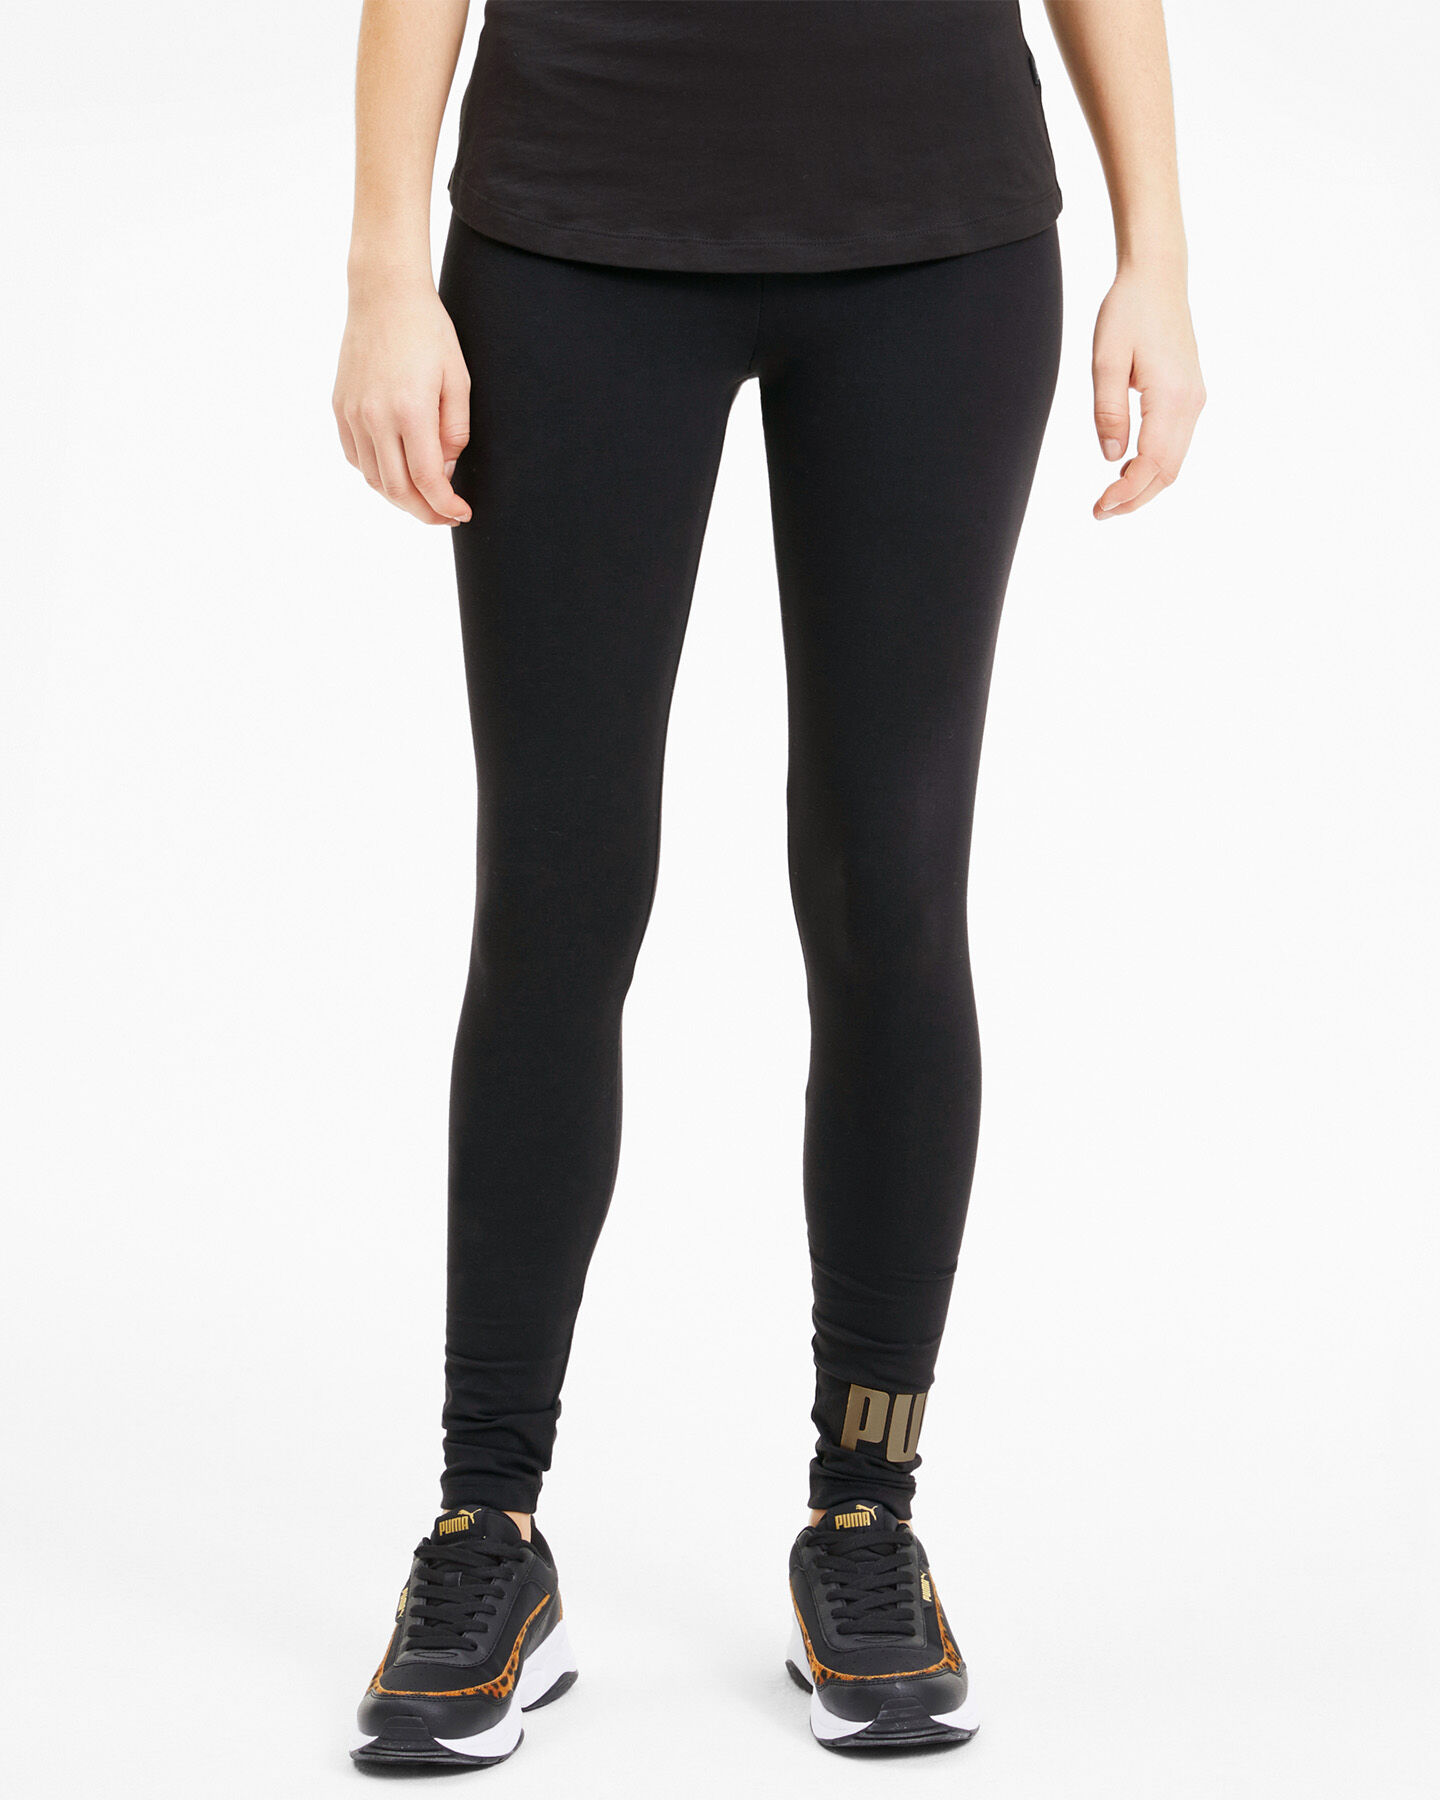 Leggings PUMA JSTRETCH LOGO FOIL W S5040858 scatto 2